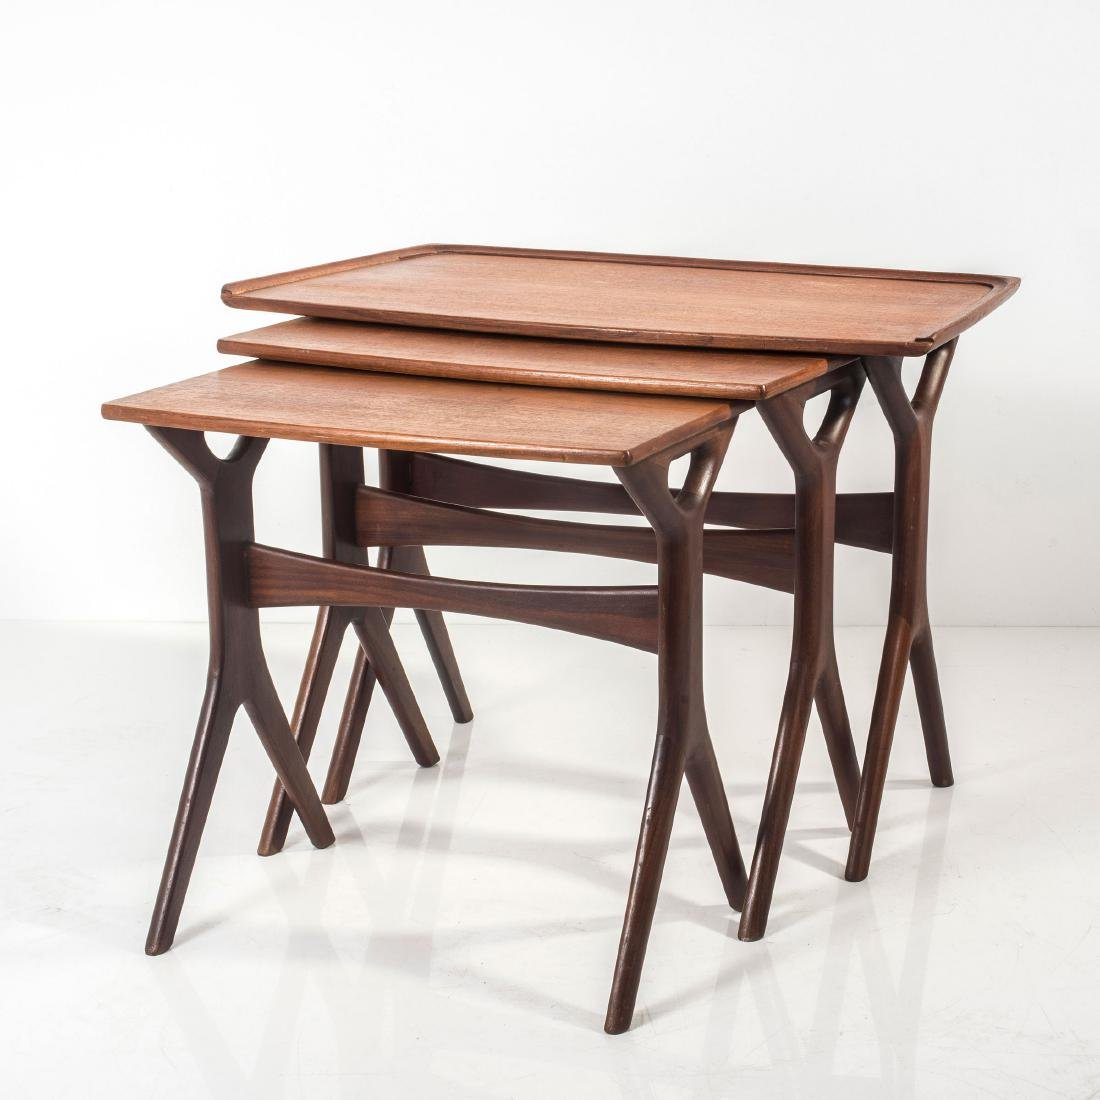 Three nesting tables, c. 1958 - 4